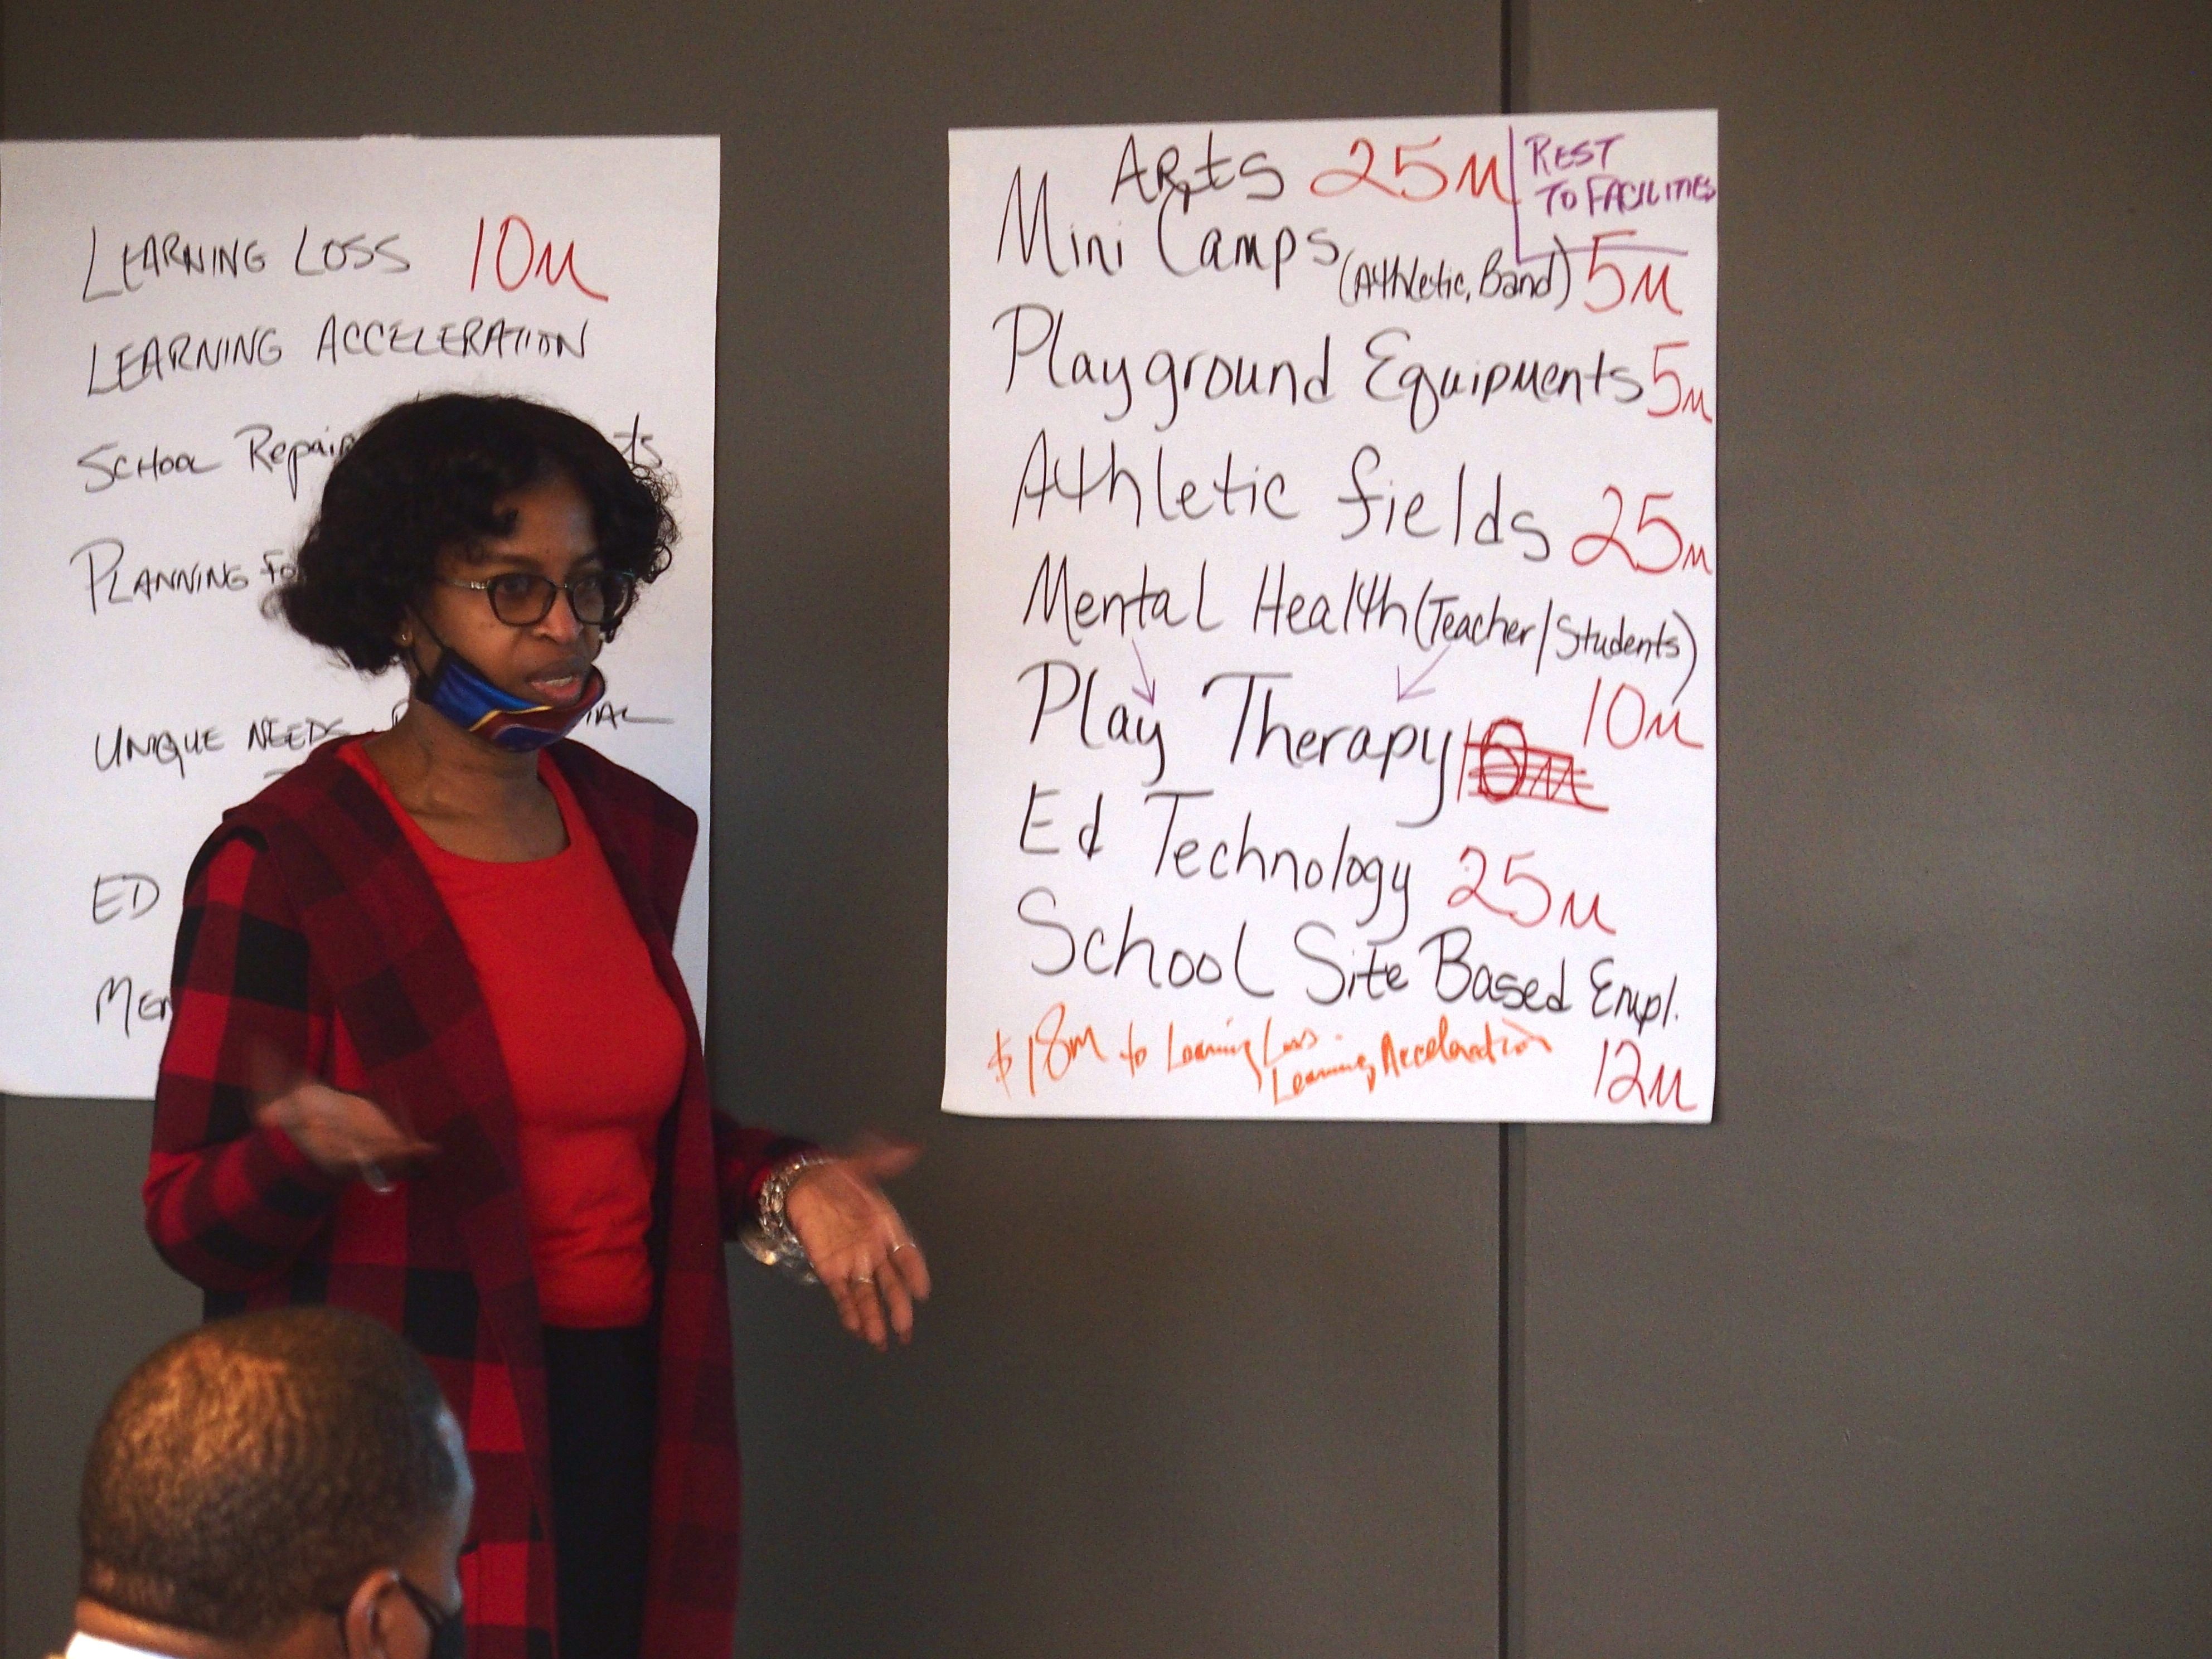 Joyce Dorse-Coleman stands next to a list of ideas posted on the wall and presents to board members and district administration.